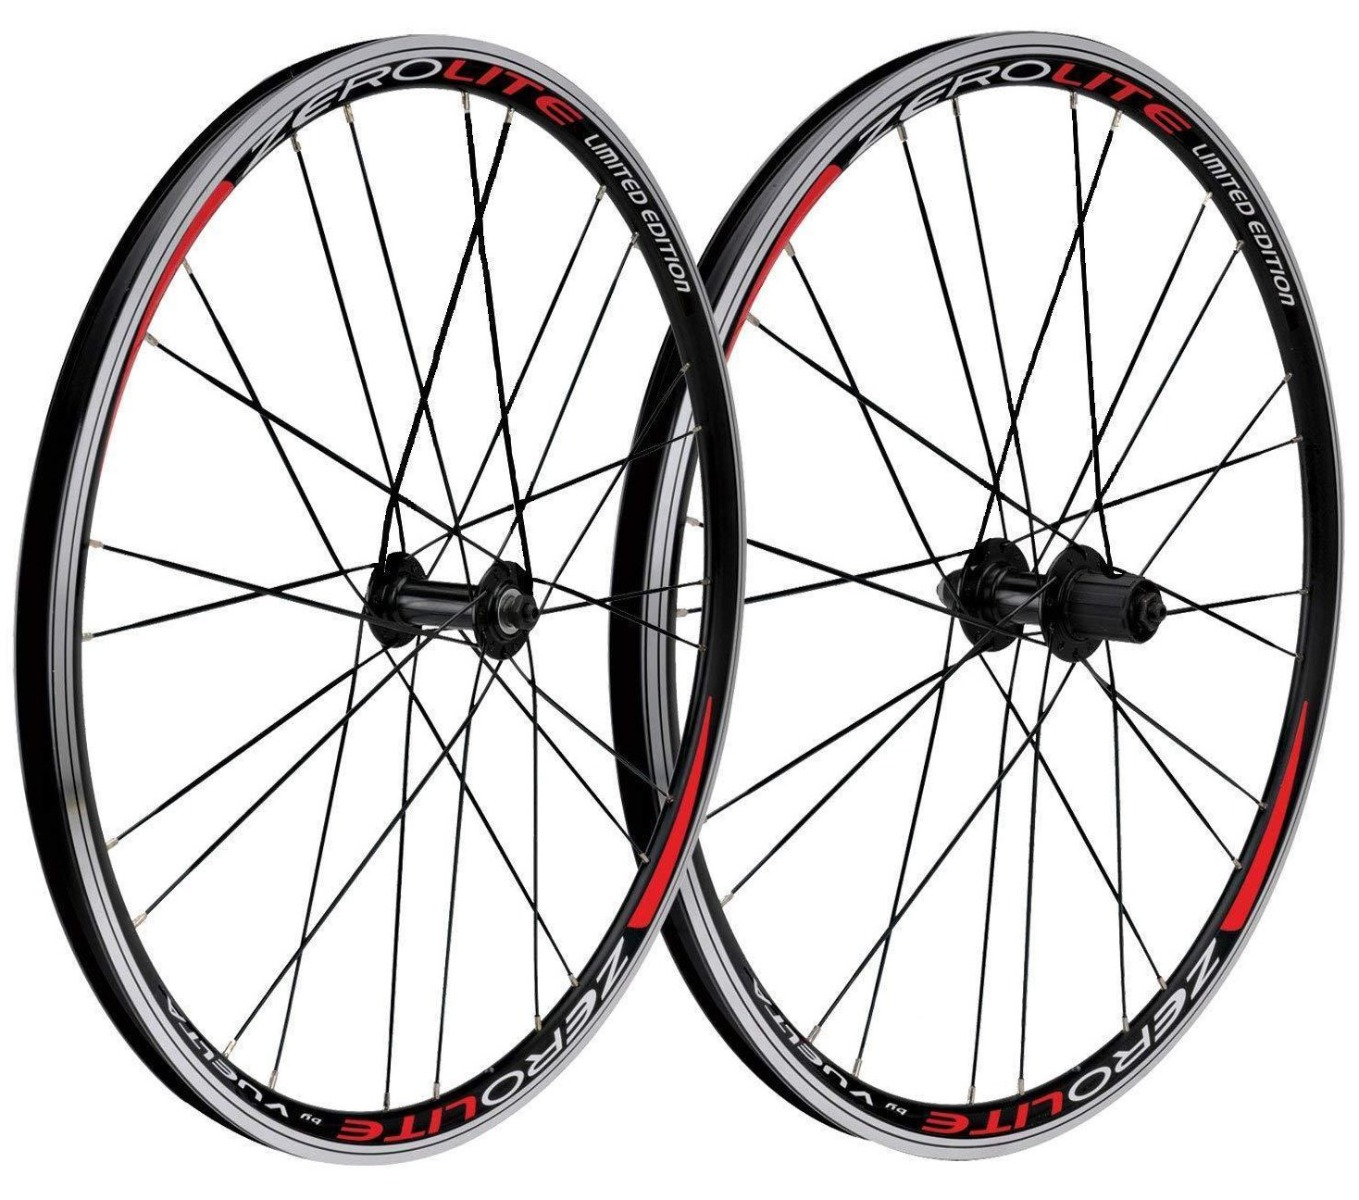 "AEROSPOKE 5 Spoke Carbon Composite 26"" Bicycle Wheel"